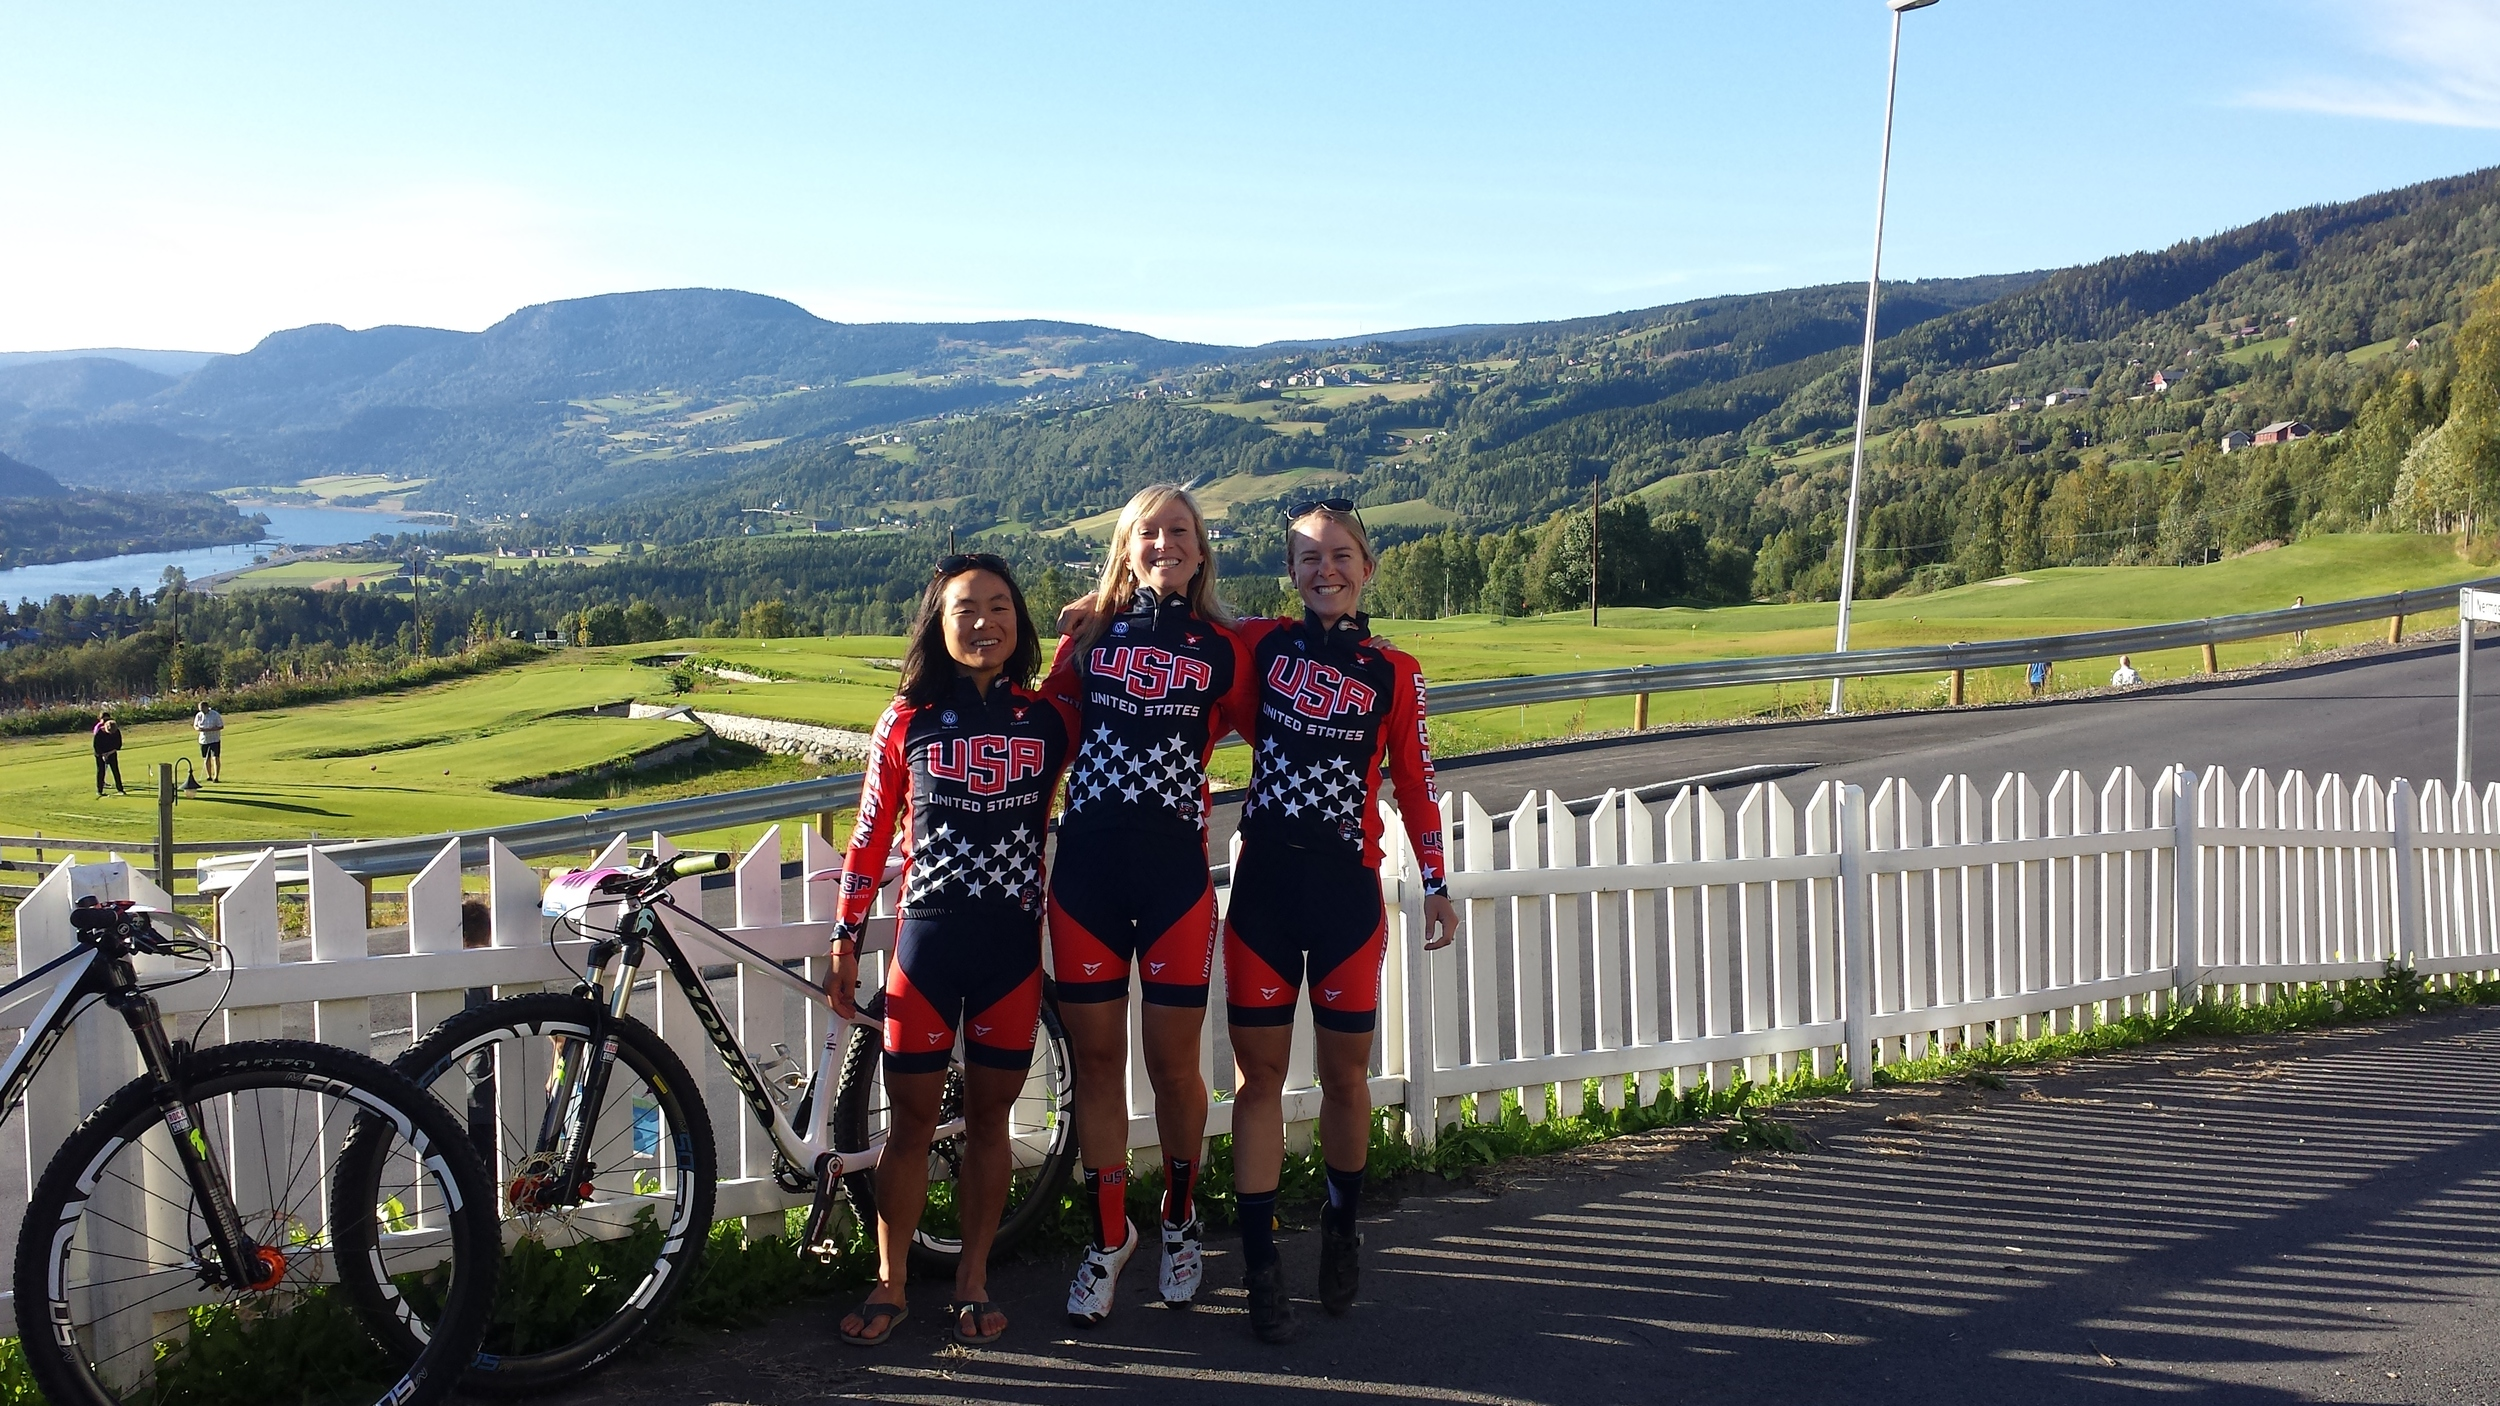 Photo: Hafjell, Norway  I spent quite a bit of time traveling with Erin Huck and Evelyn Dong this year. We all pushed ourselves to the limit and it paid off. I'm happy to see these two continue their careers with Sho-Air/Cannondale (Evelyn) and Scott 3Rox (Erin).